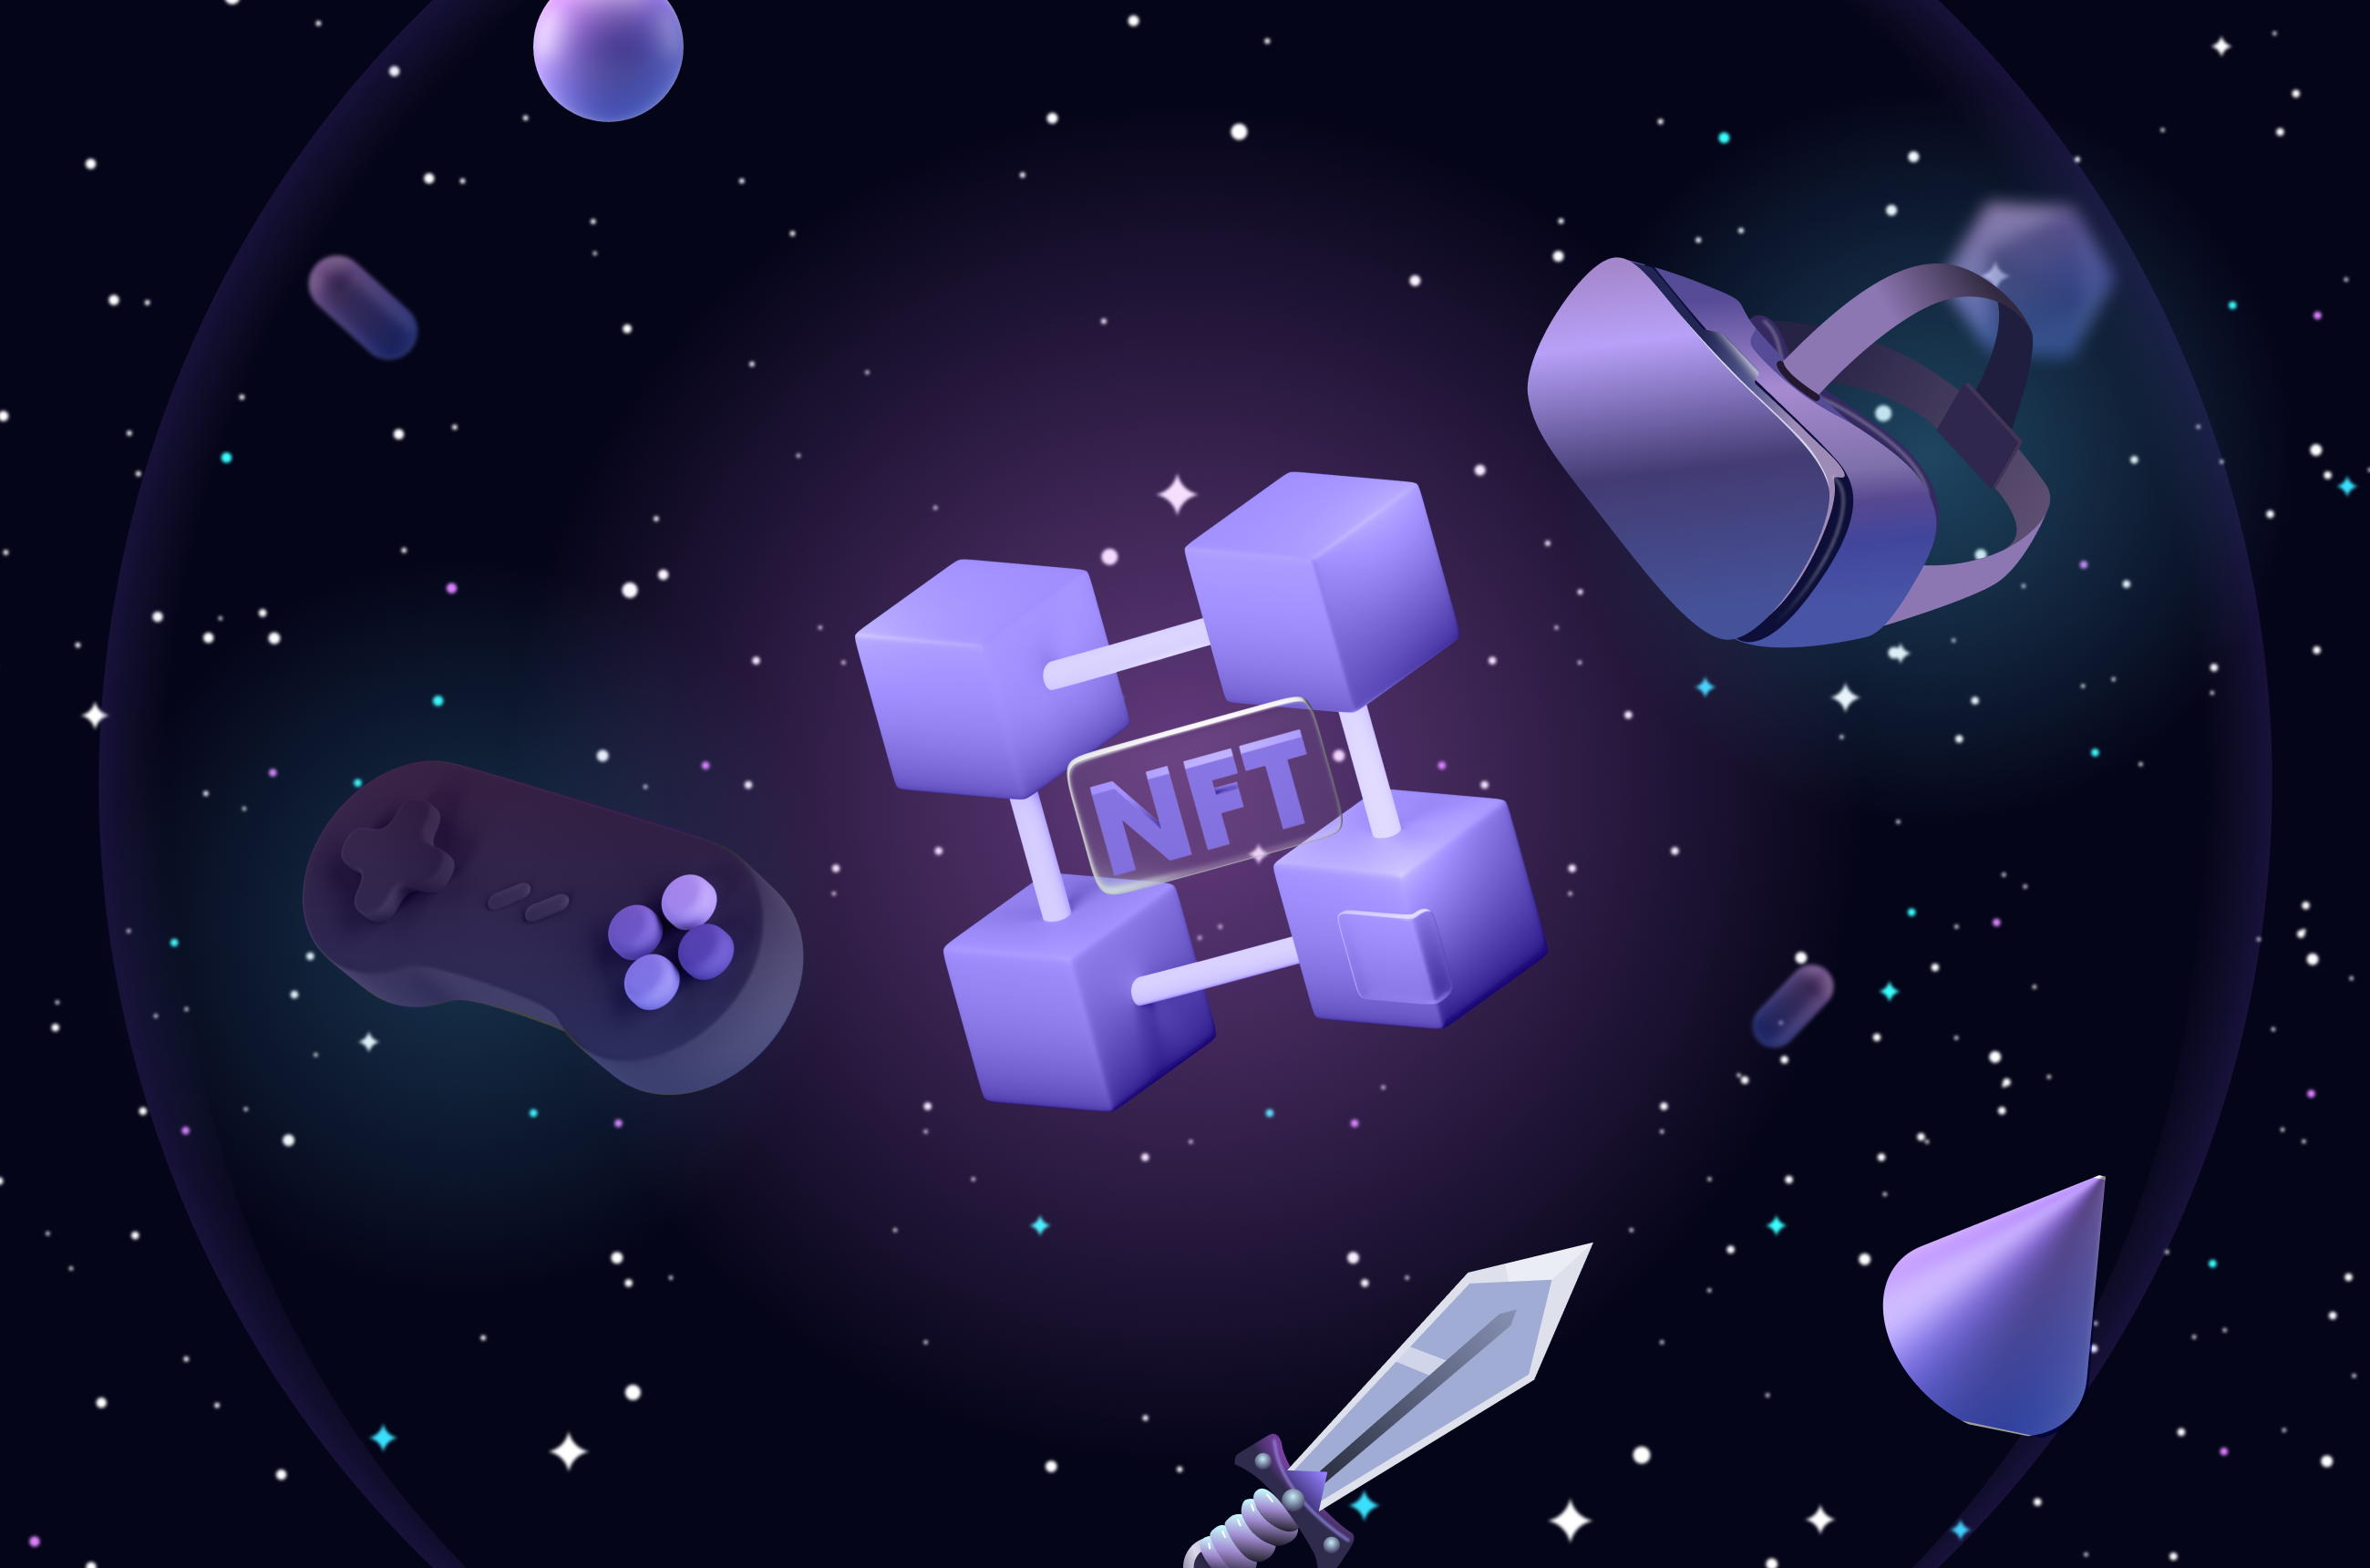 Why Steam Should Not Ban NFT Games